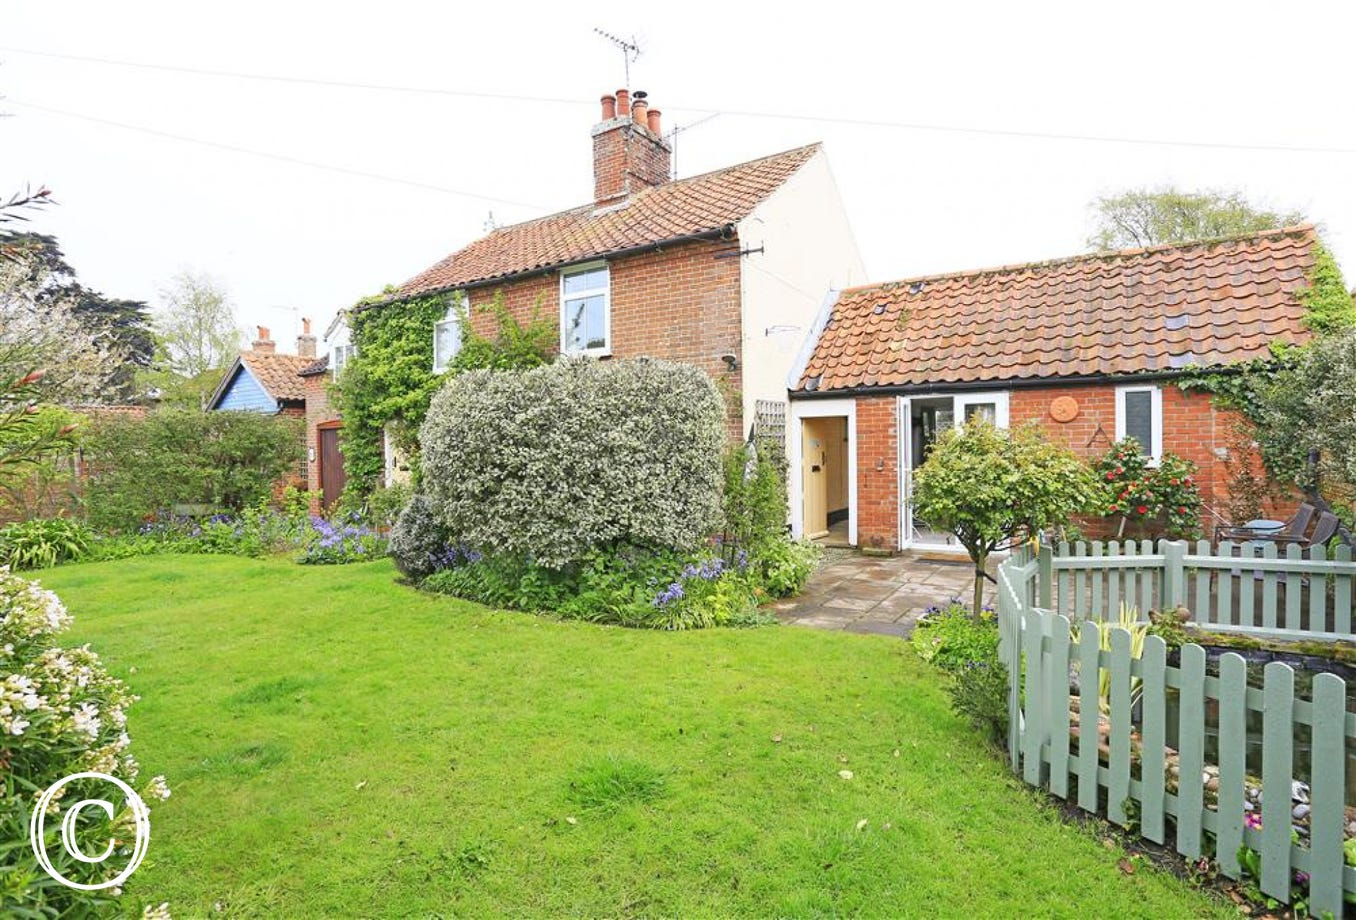 Enjoy the lawn and the mature flowers in this pretty Walberswick garden.